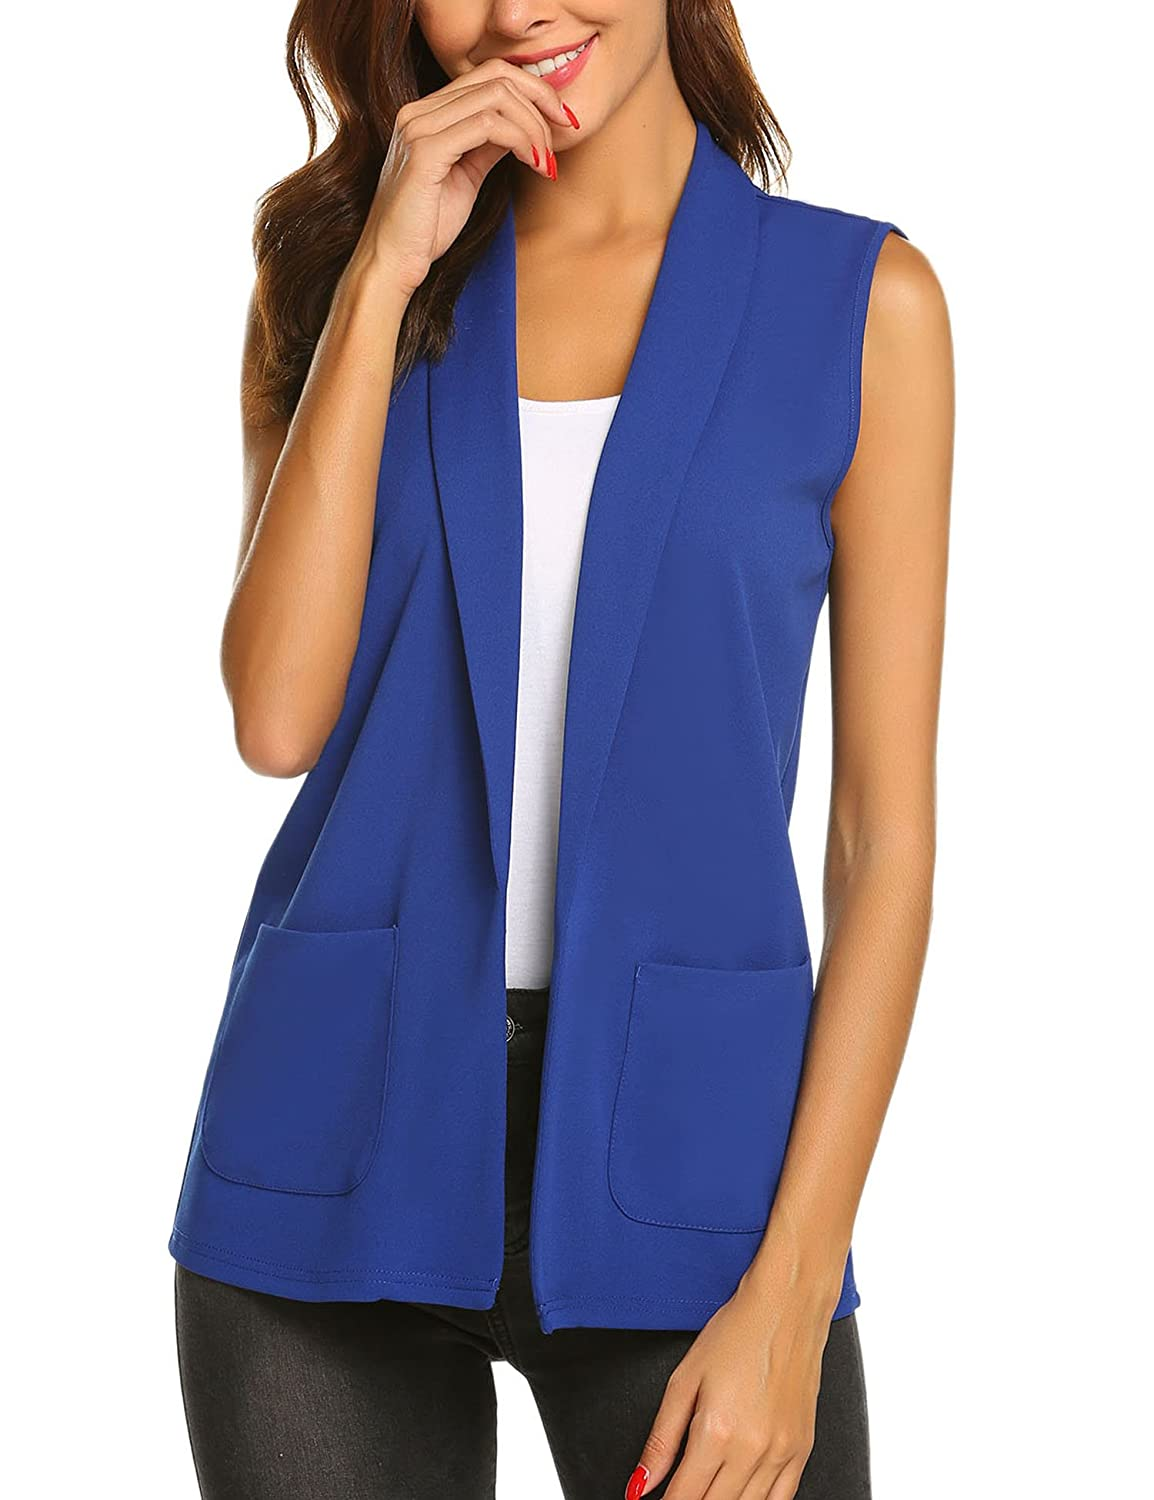 Ladies' Colorful 1920s Sweaters and Cardigans History Dealwell Womens Sleeveless Vest Casual Open Front Cardigan Blazer with Pockets $24.99 AT vintagedancer.com